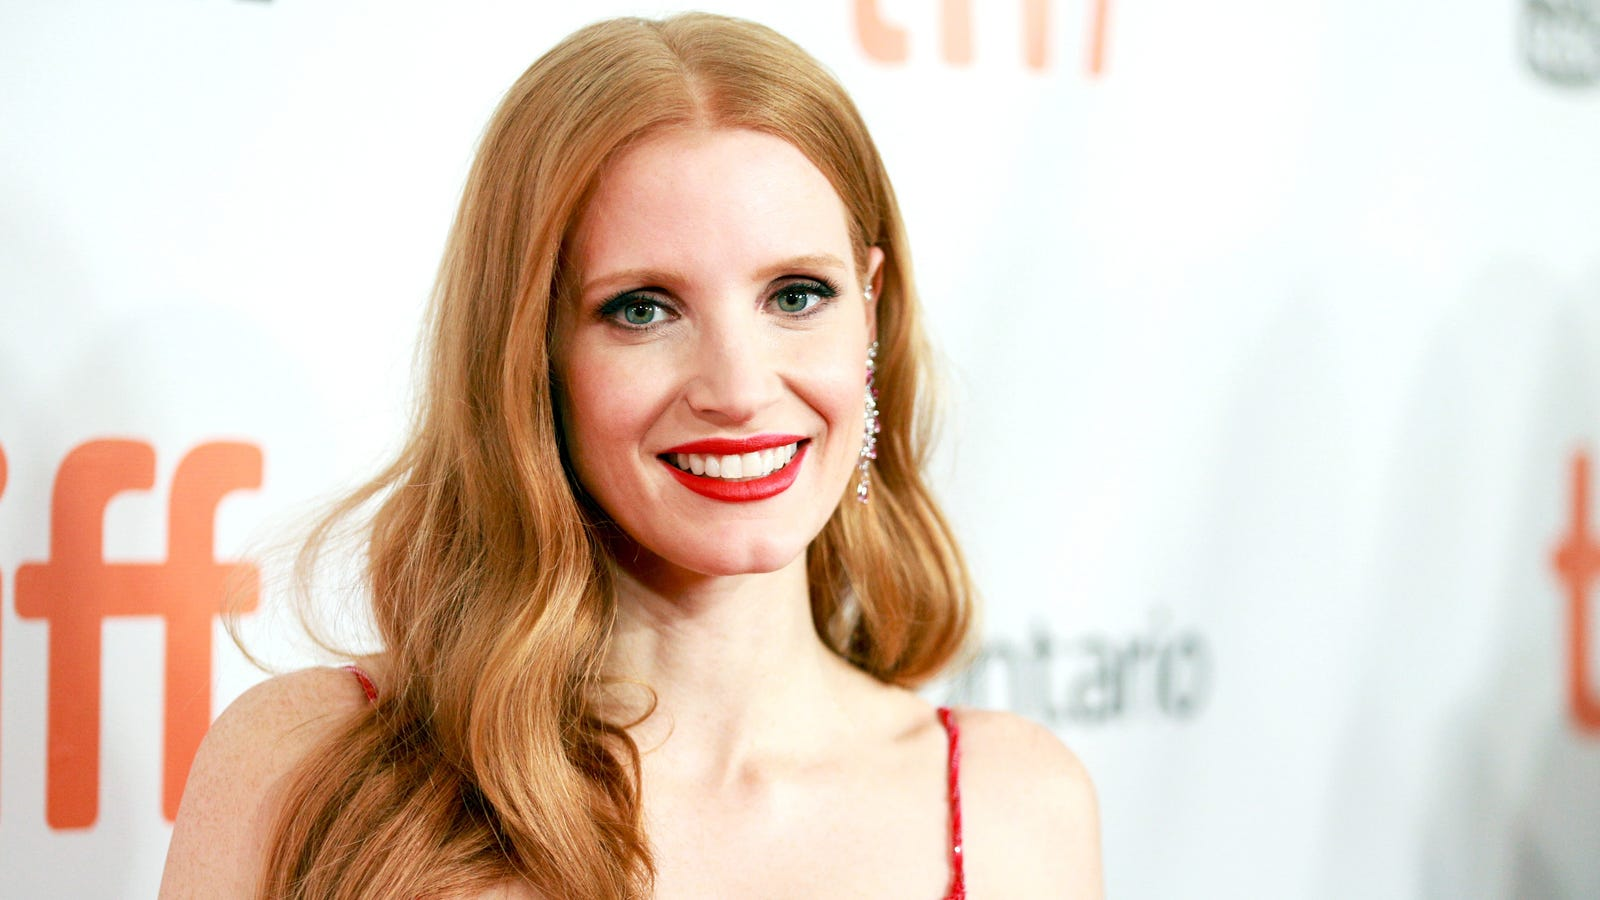 It director wants Jessica Chastain to play Bev in the sequel